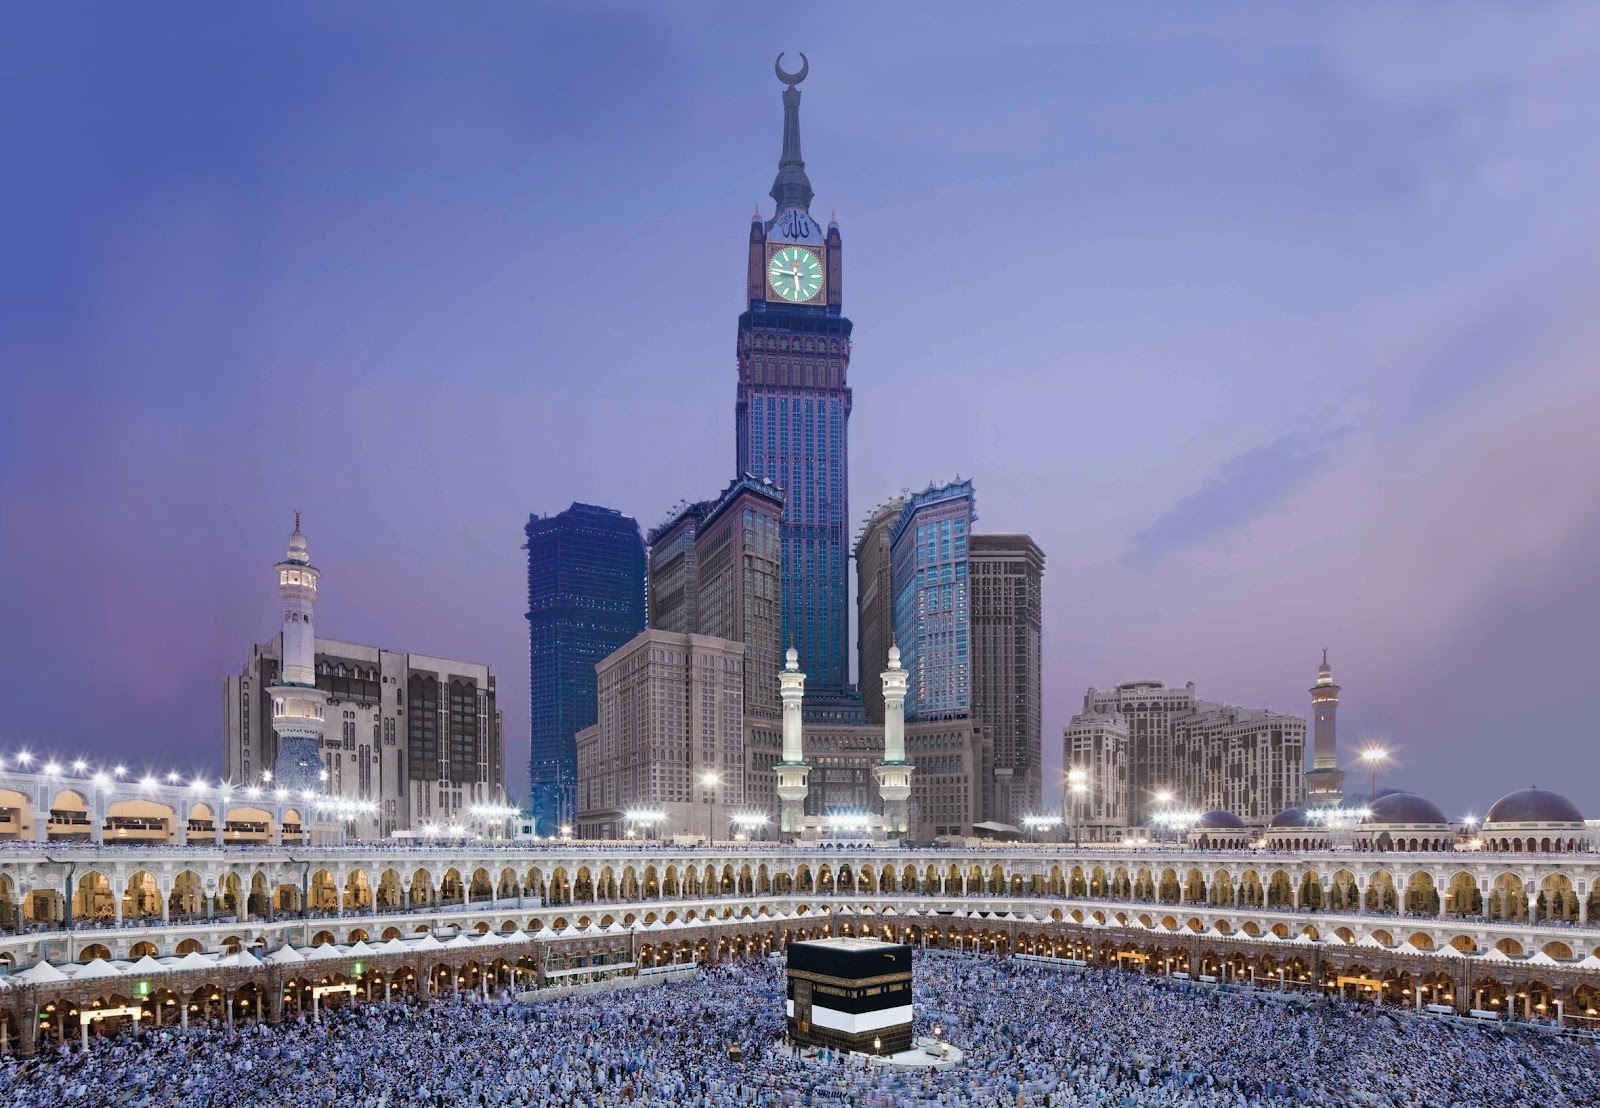 http://www.borongaja.com/data_images/out/16/632649-beautiful-makkah-royal-clock-tower-hotel.jpg